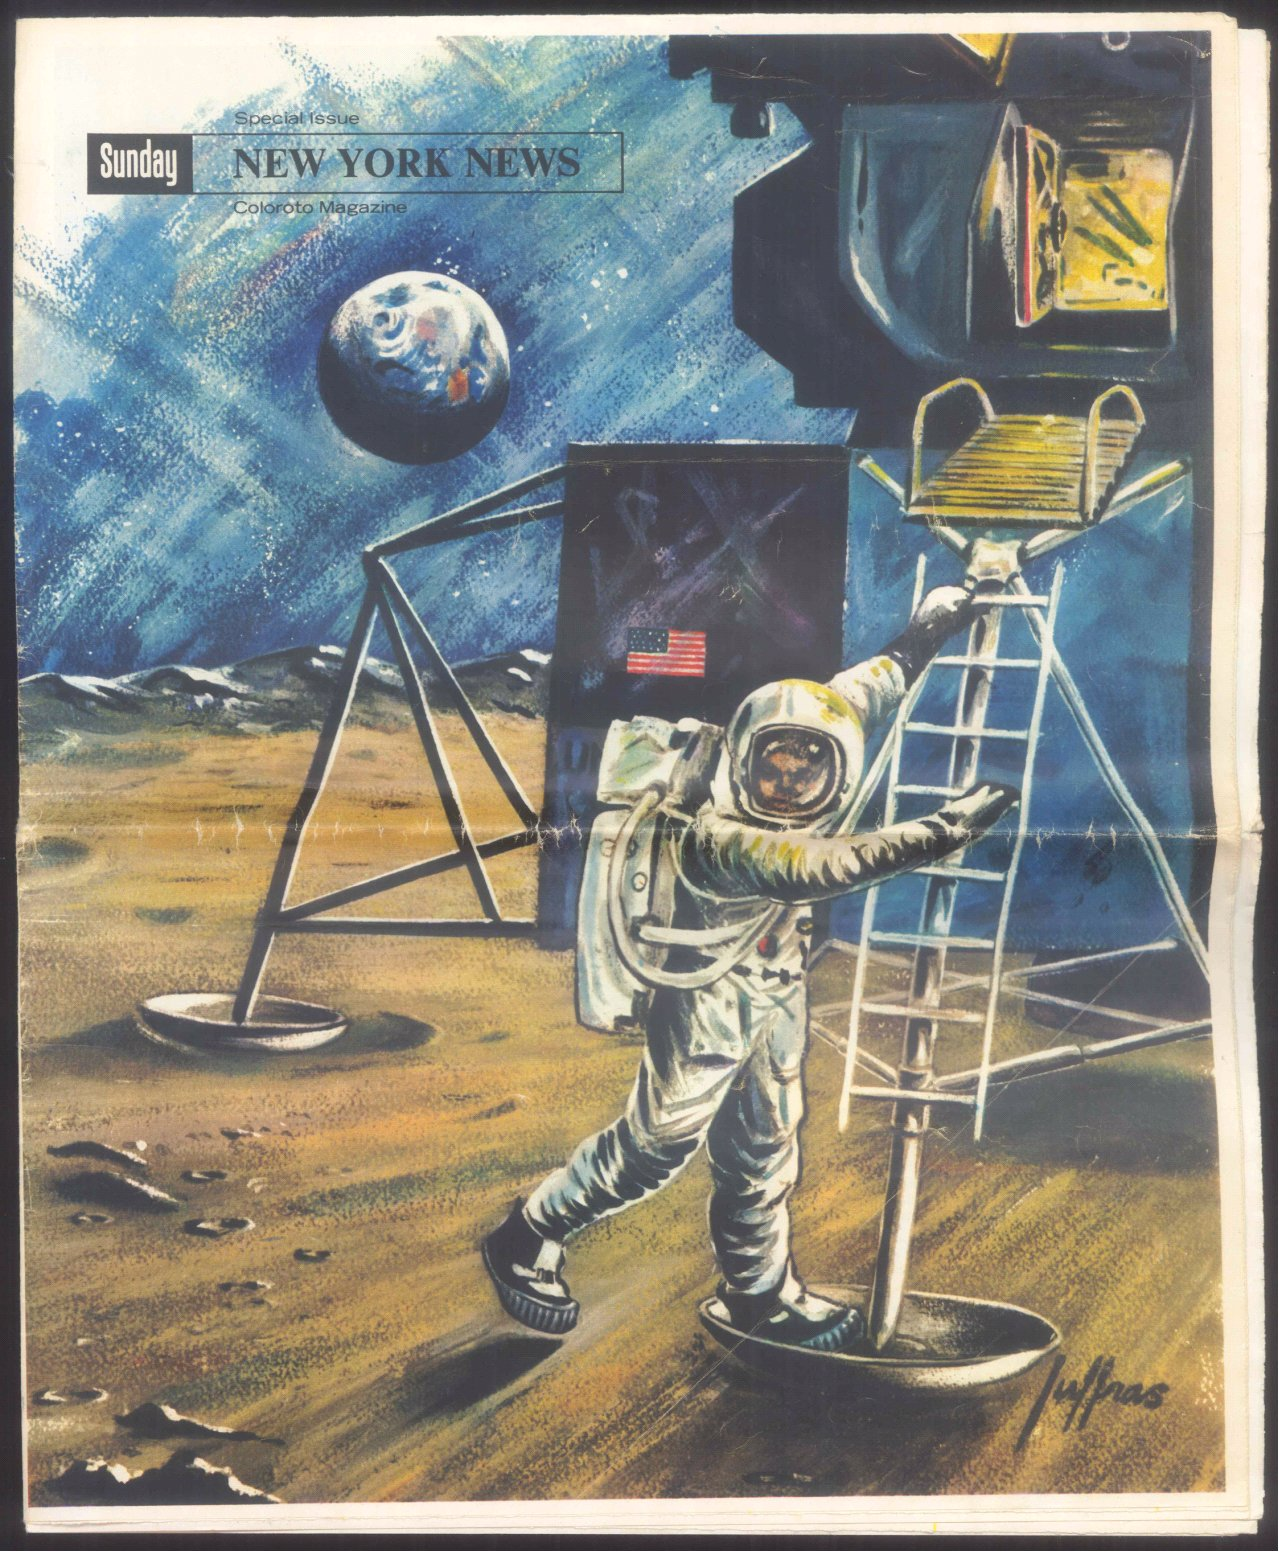 New York News, Special Issue, Apollo 11 Mondlandung